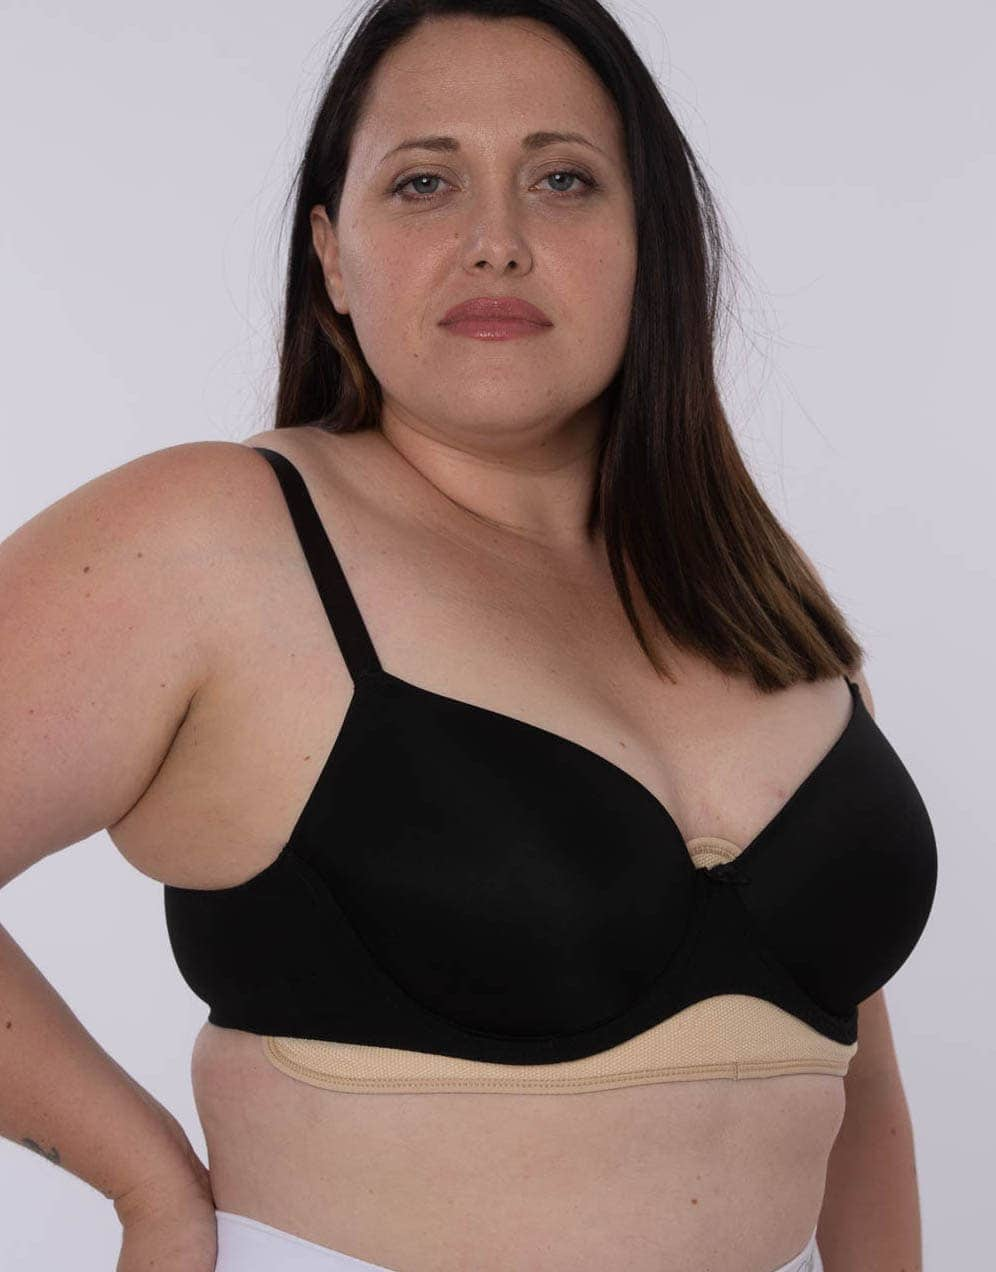 black bra sweat liners controls sweats and gives relief from chafing